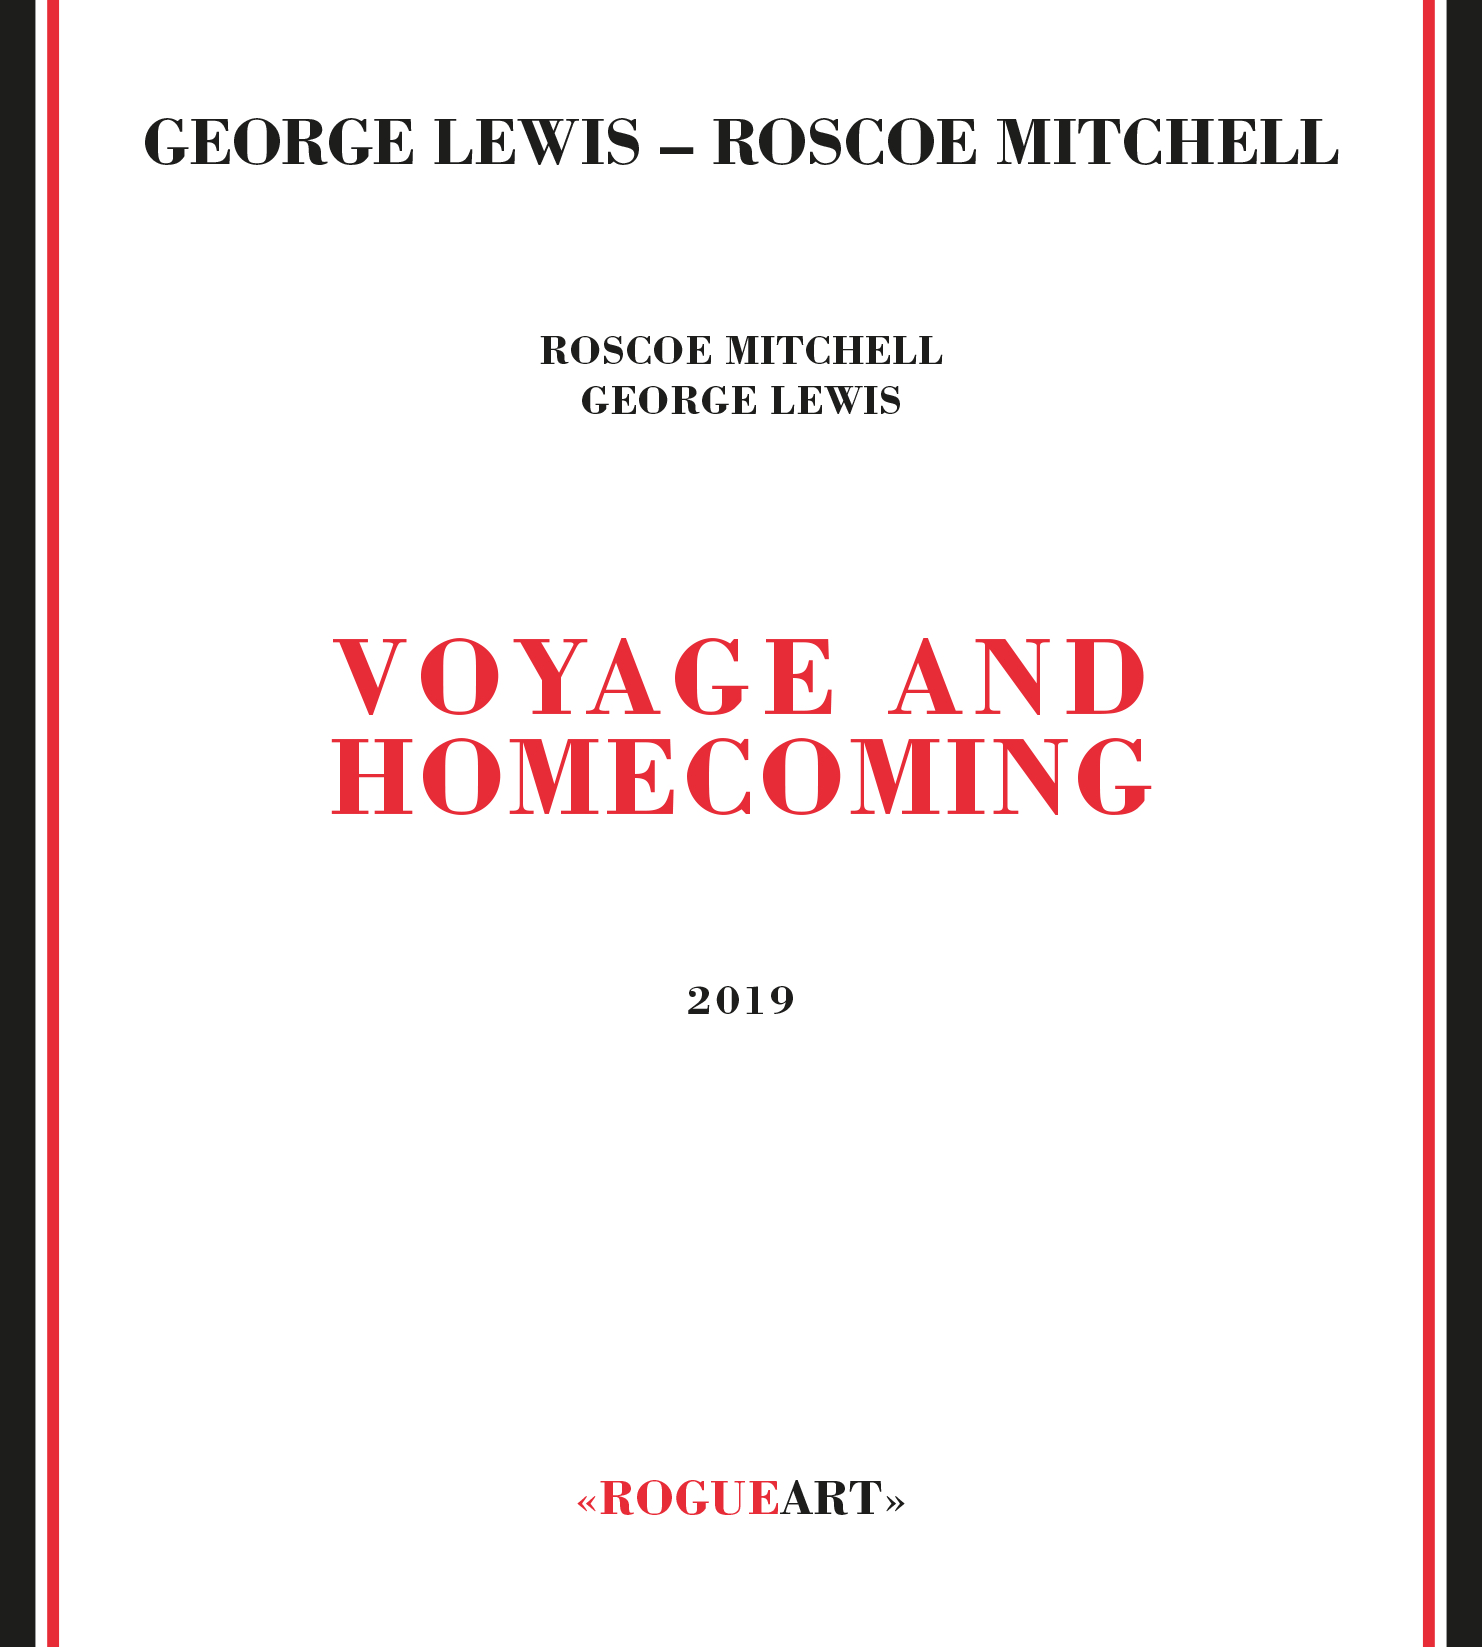 Front cover of the album VOYAGE AND HOMECOMING